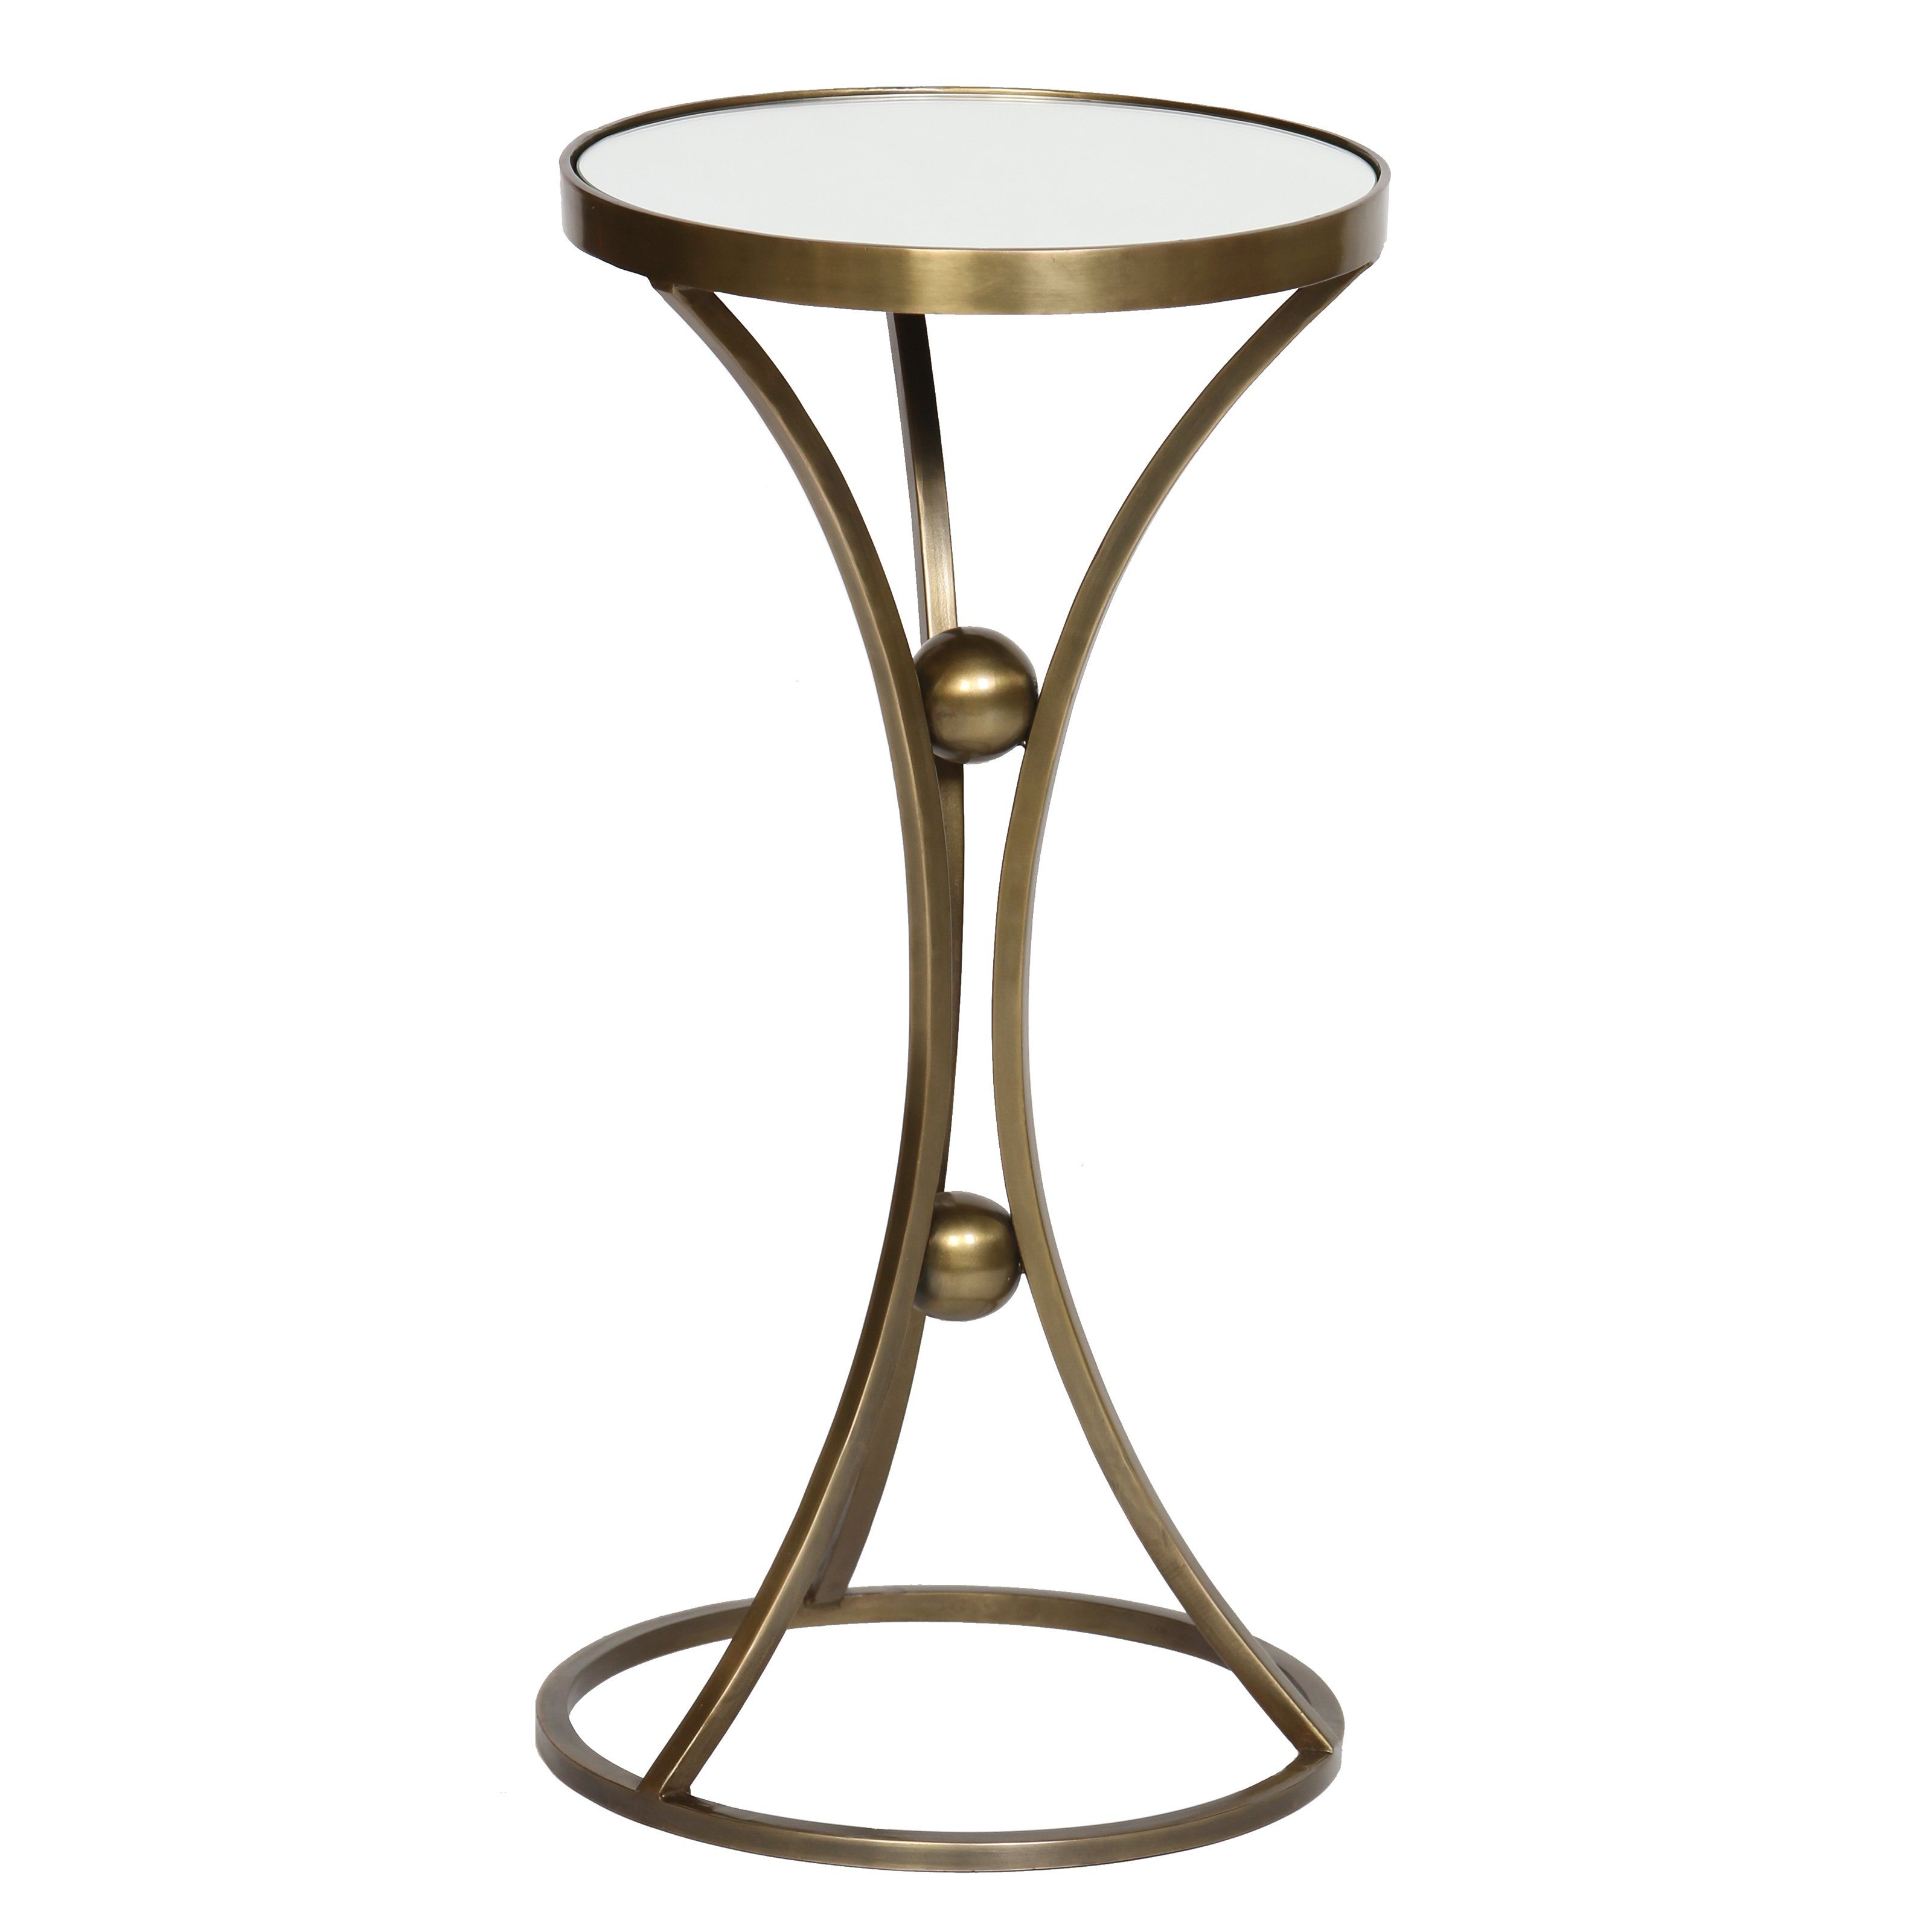 prima legged accent table antique brass west elm emmerson round end tablecloth industrial small design vintage white green marble side vanity furniture acrylic clear mid century